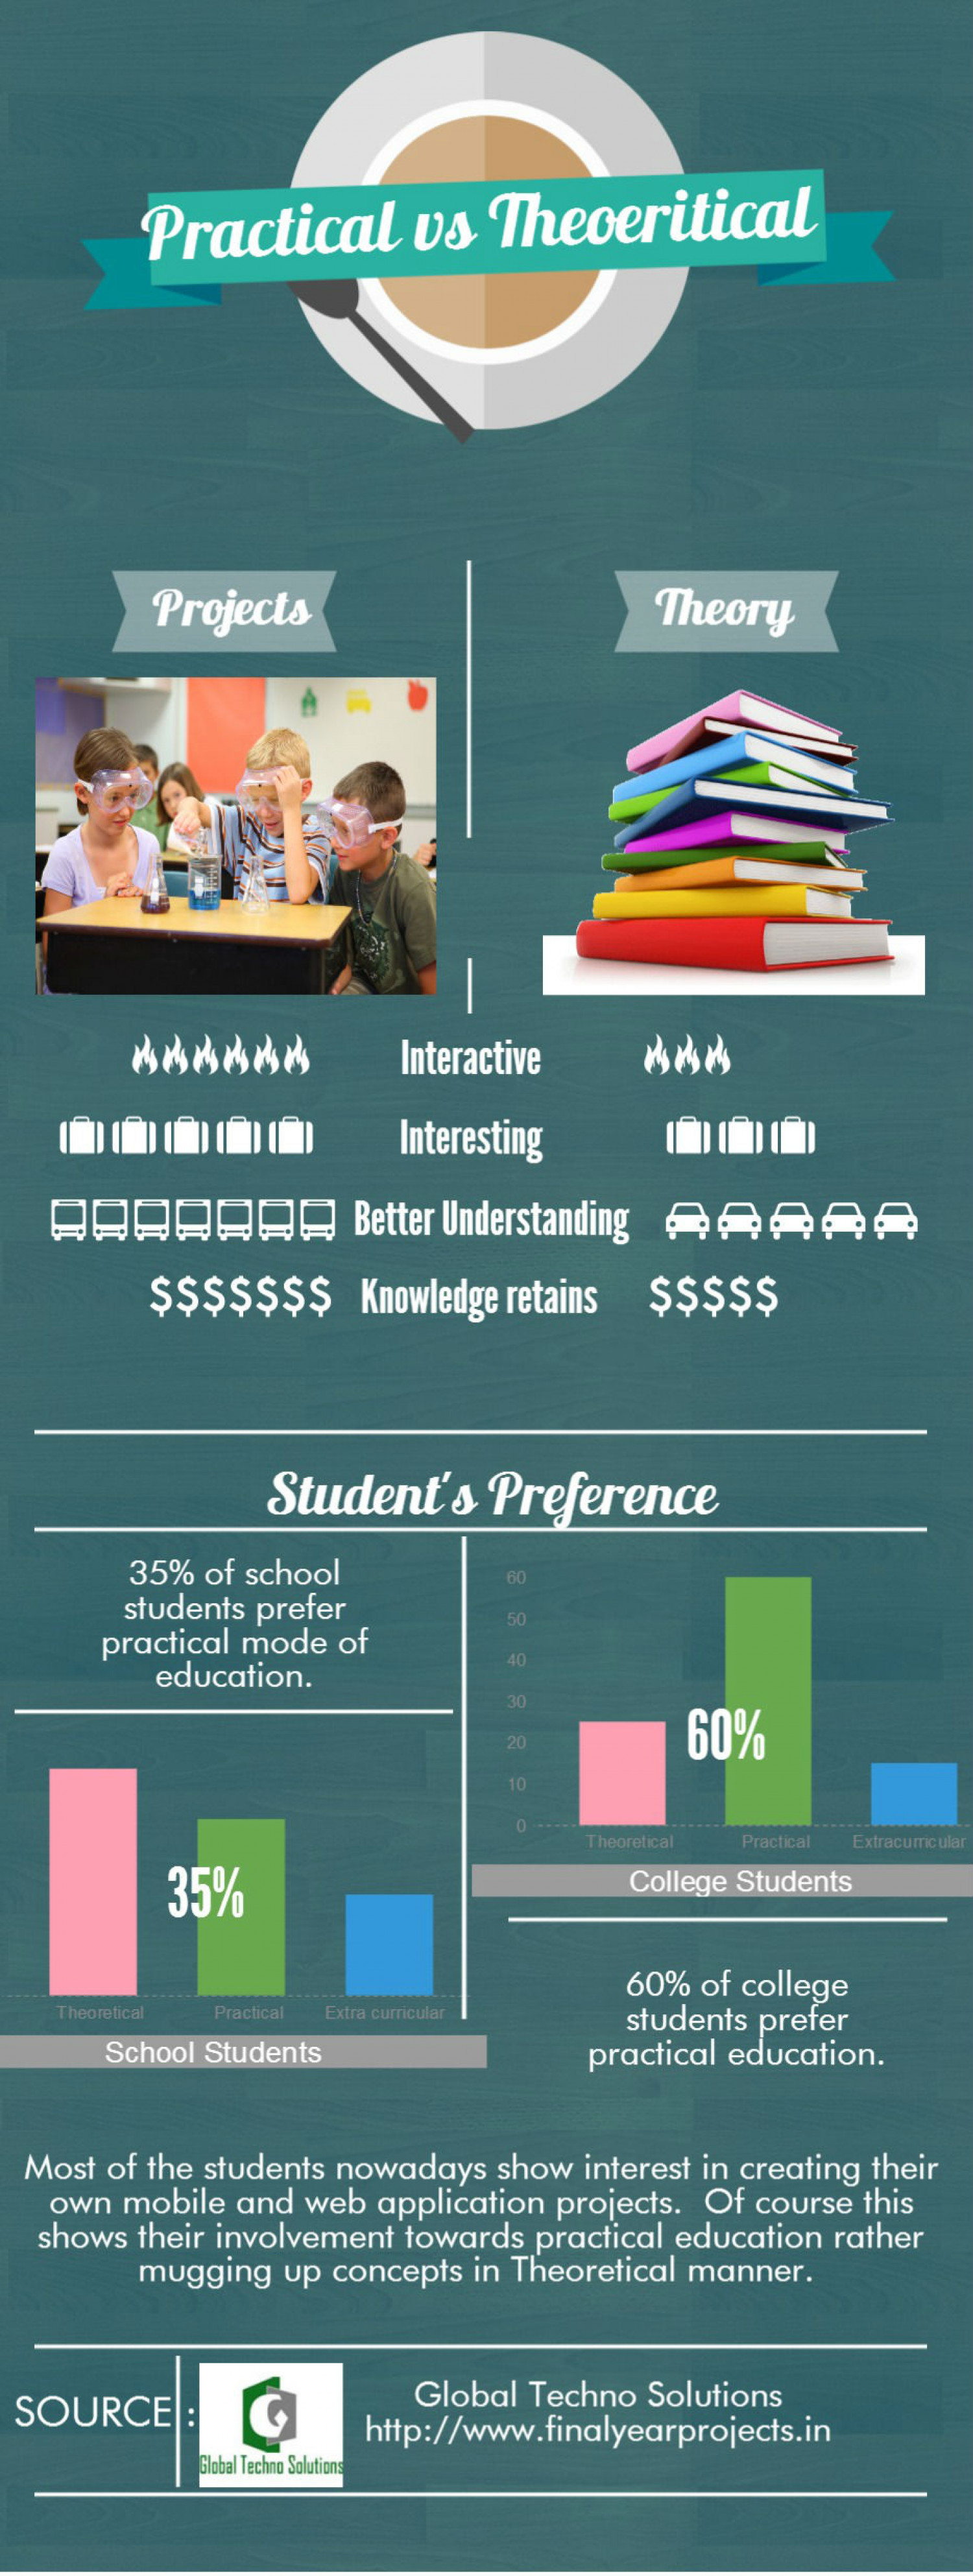 Practical Education vs Theoretical Education Infographic